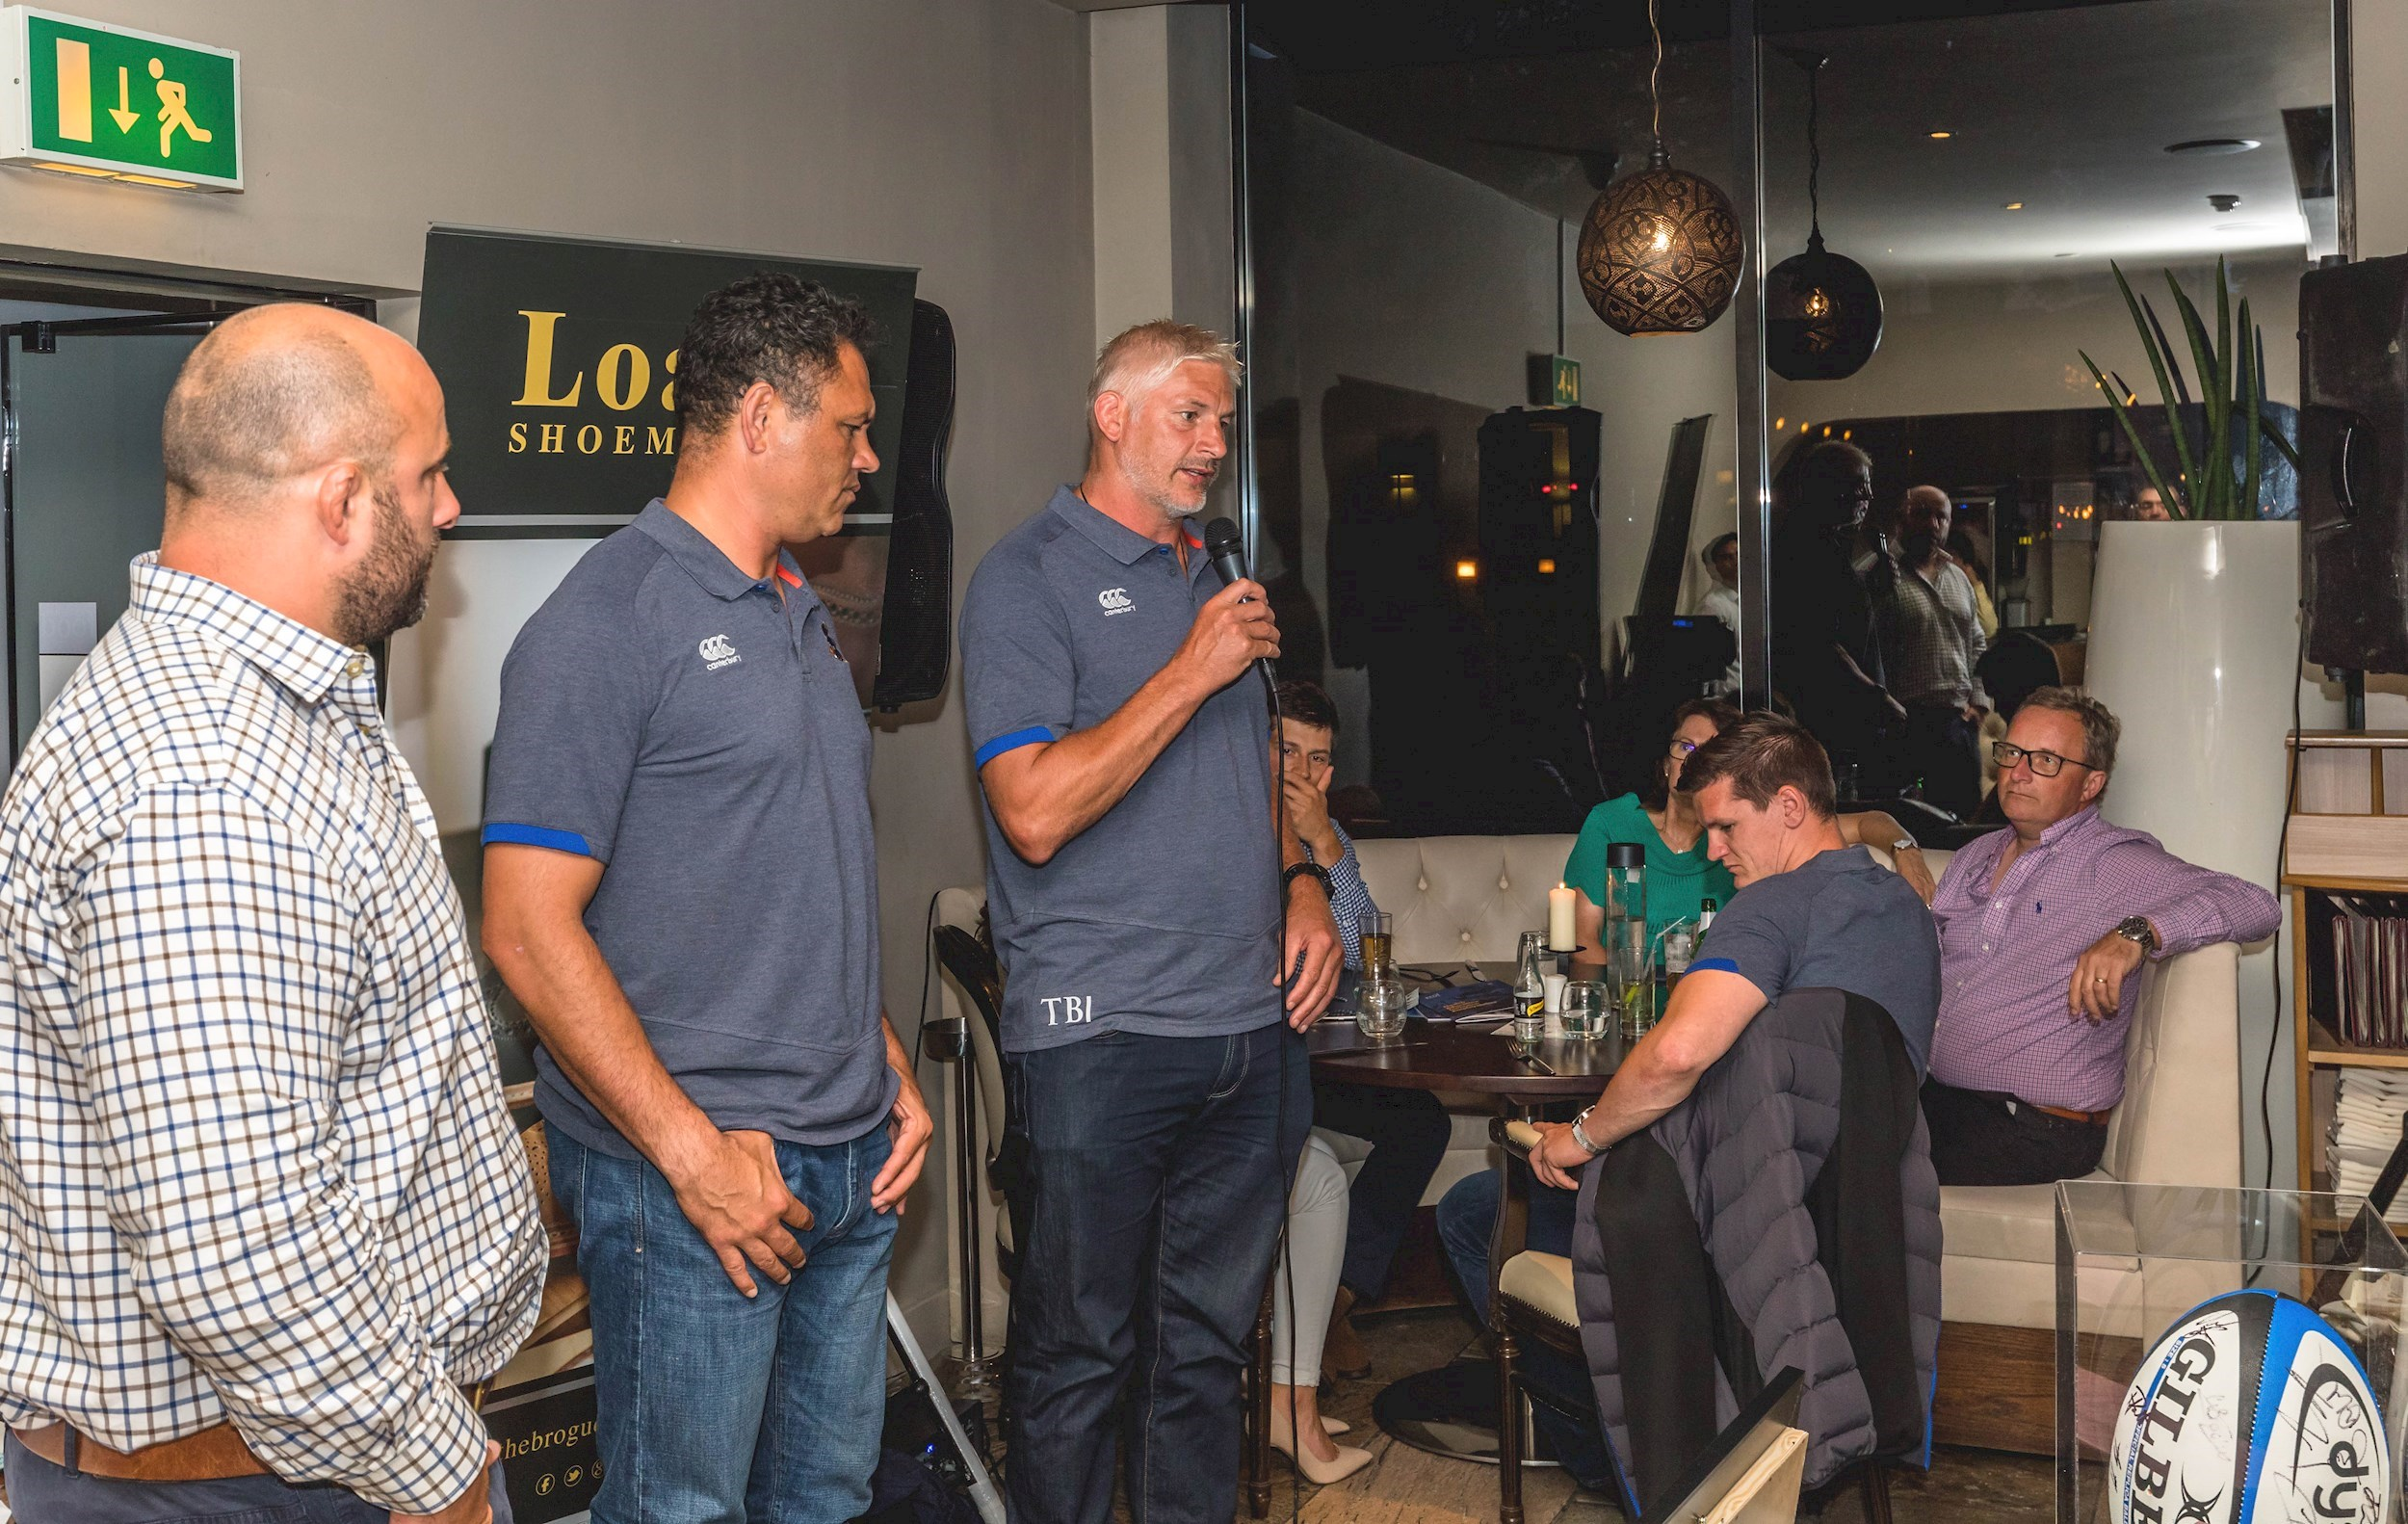 Loake Bath raises £3,500 for charity at The Mint Room curry night